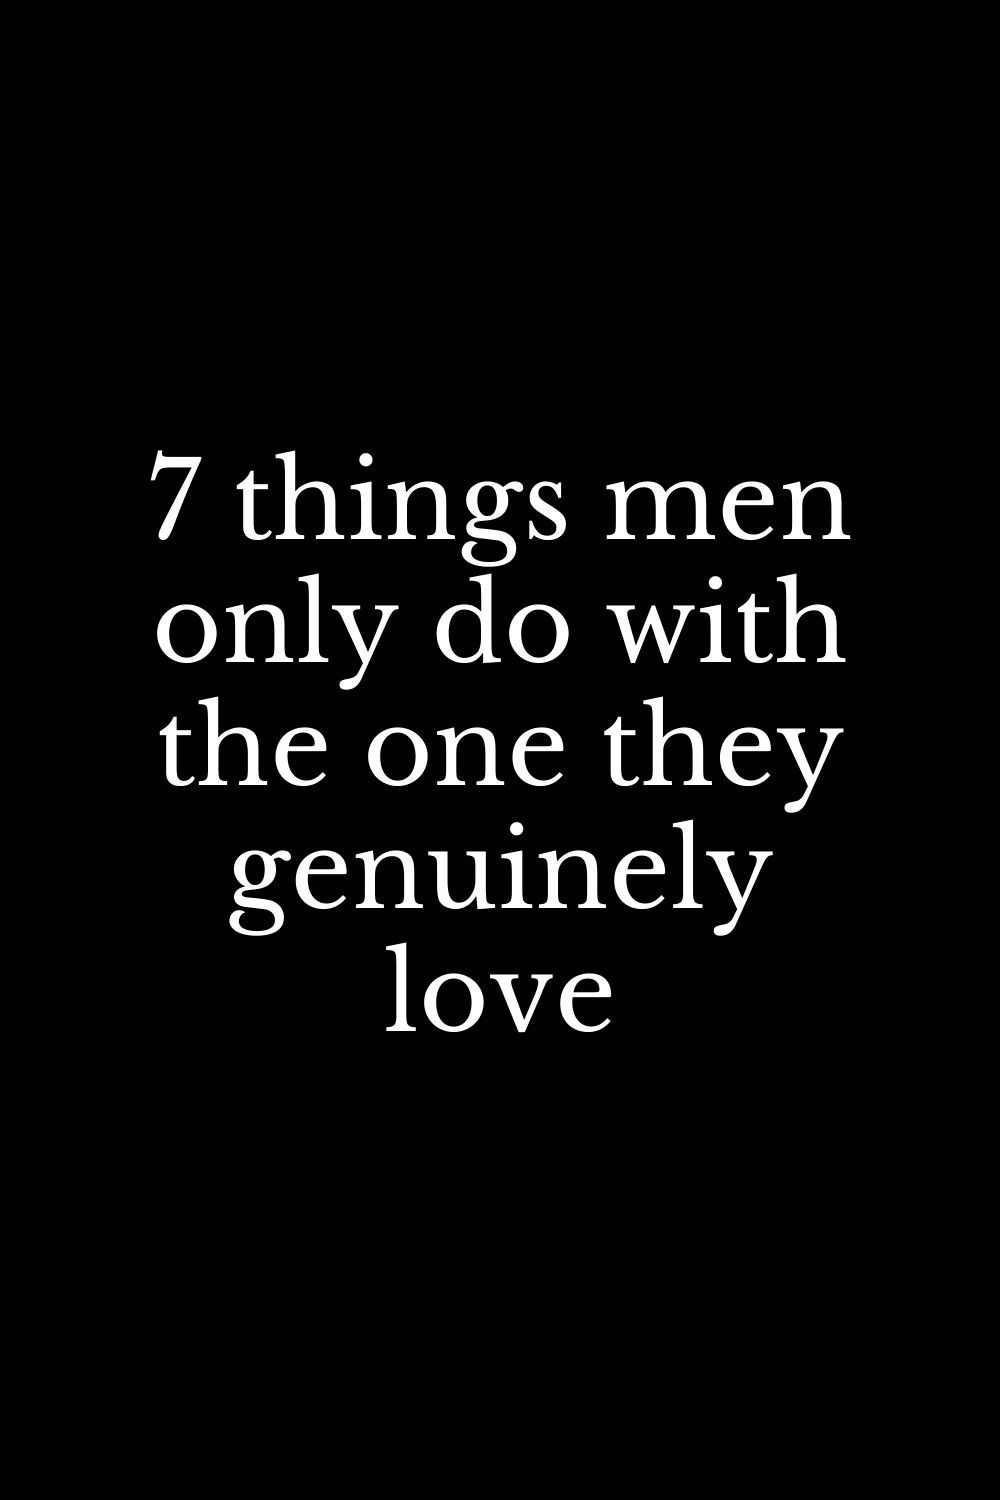 7 things men only do with the one they genuinely love